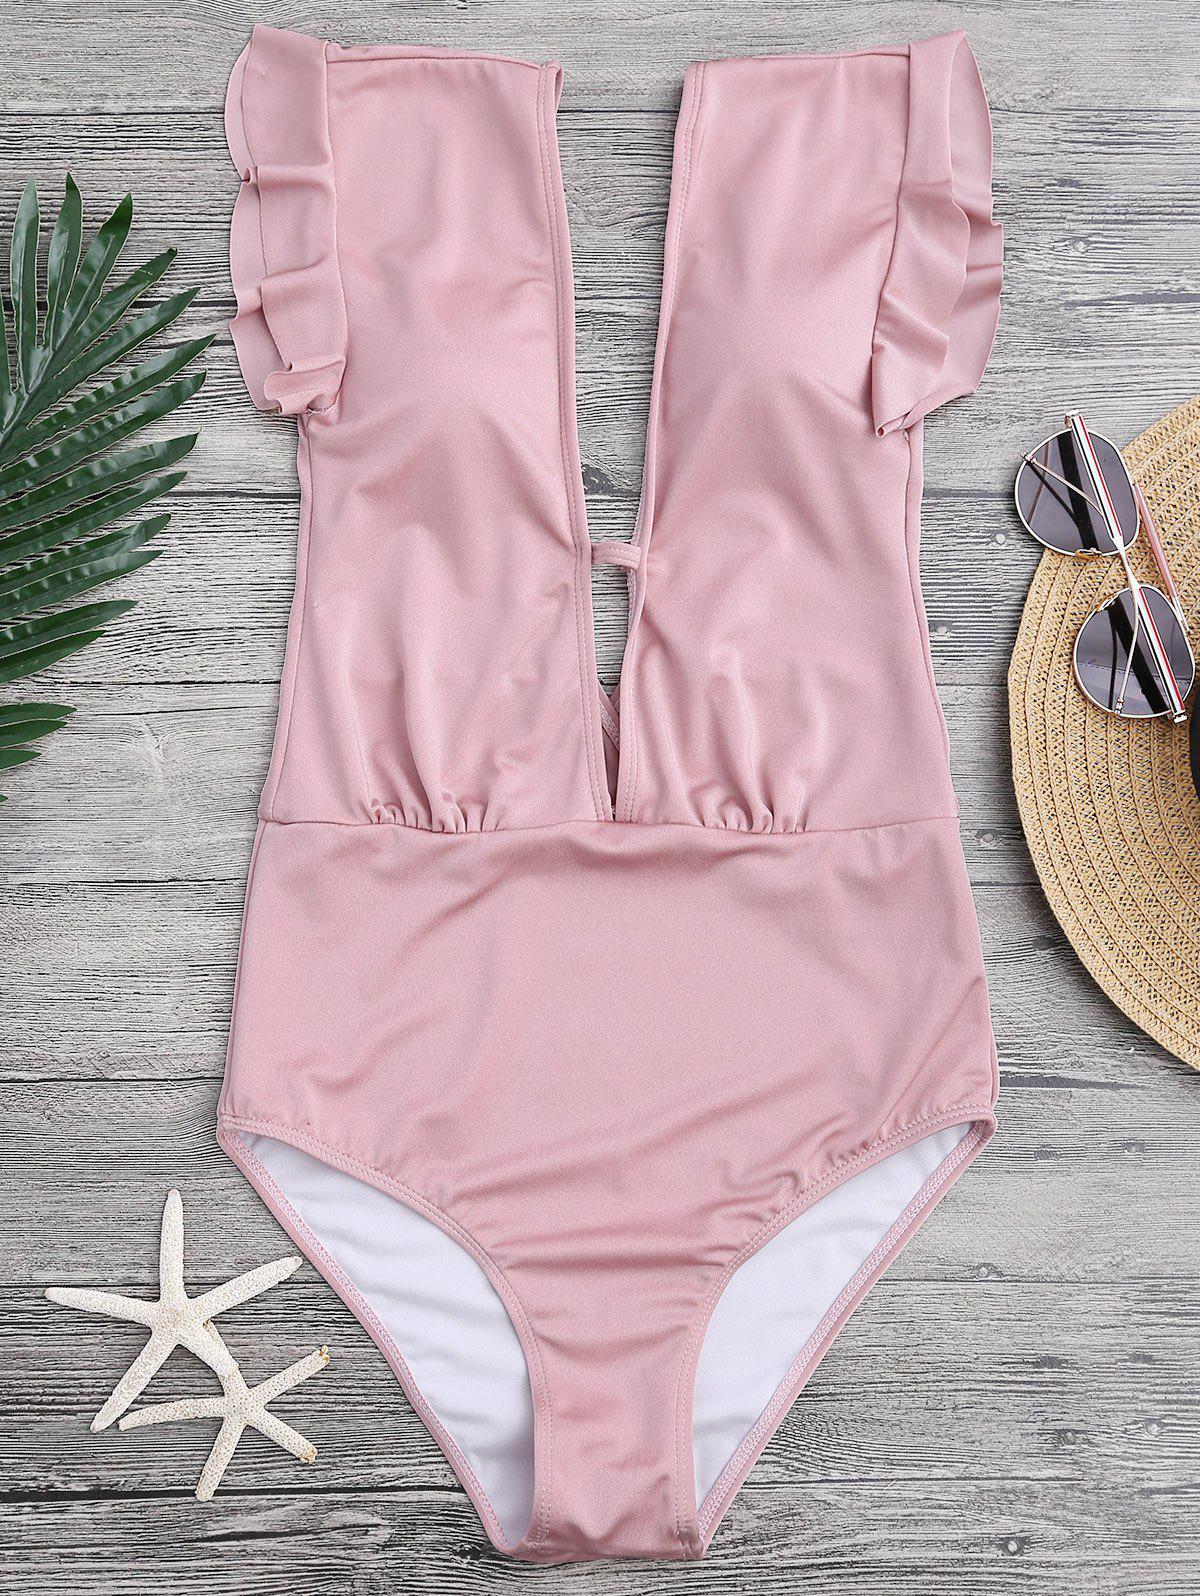 602a036ff74 40% OFF] Frilled One-piece Plunge Swimsuit | Rosegal